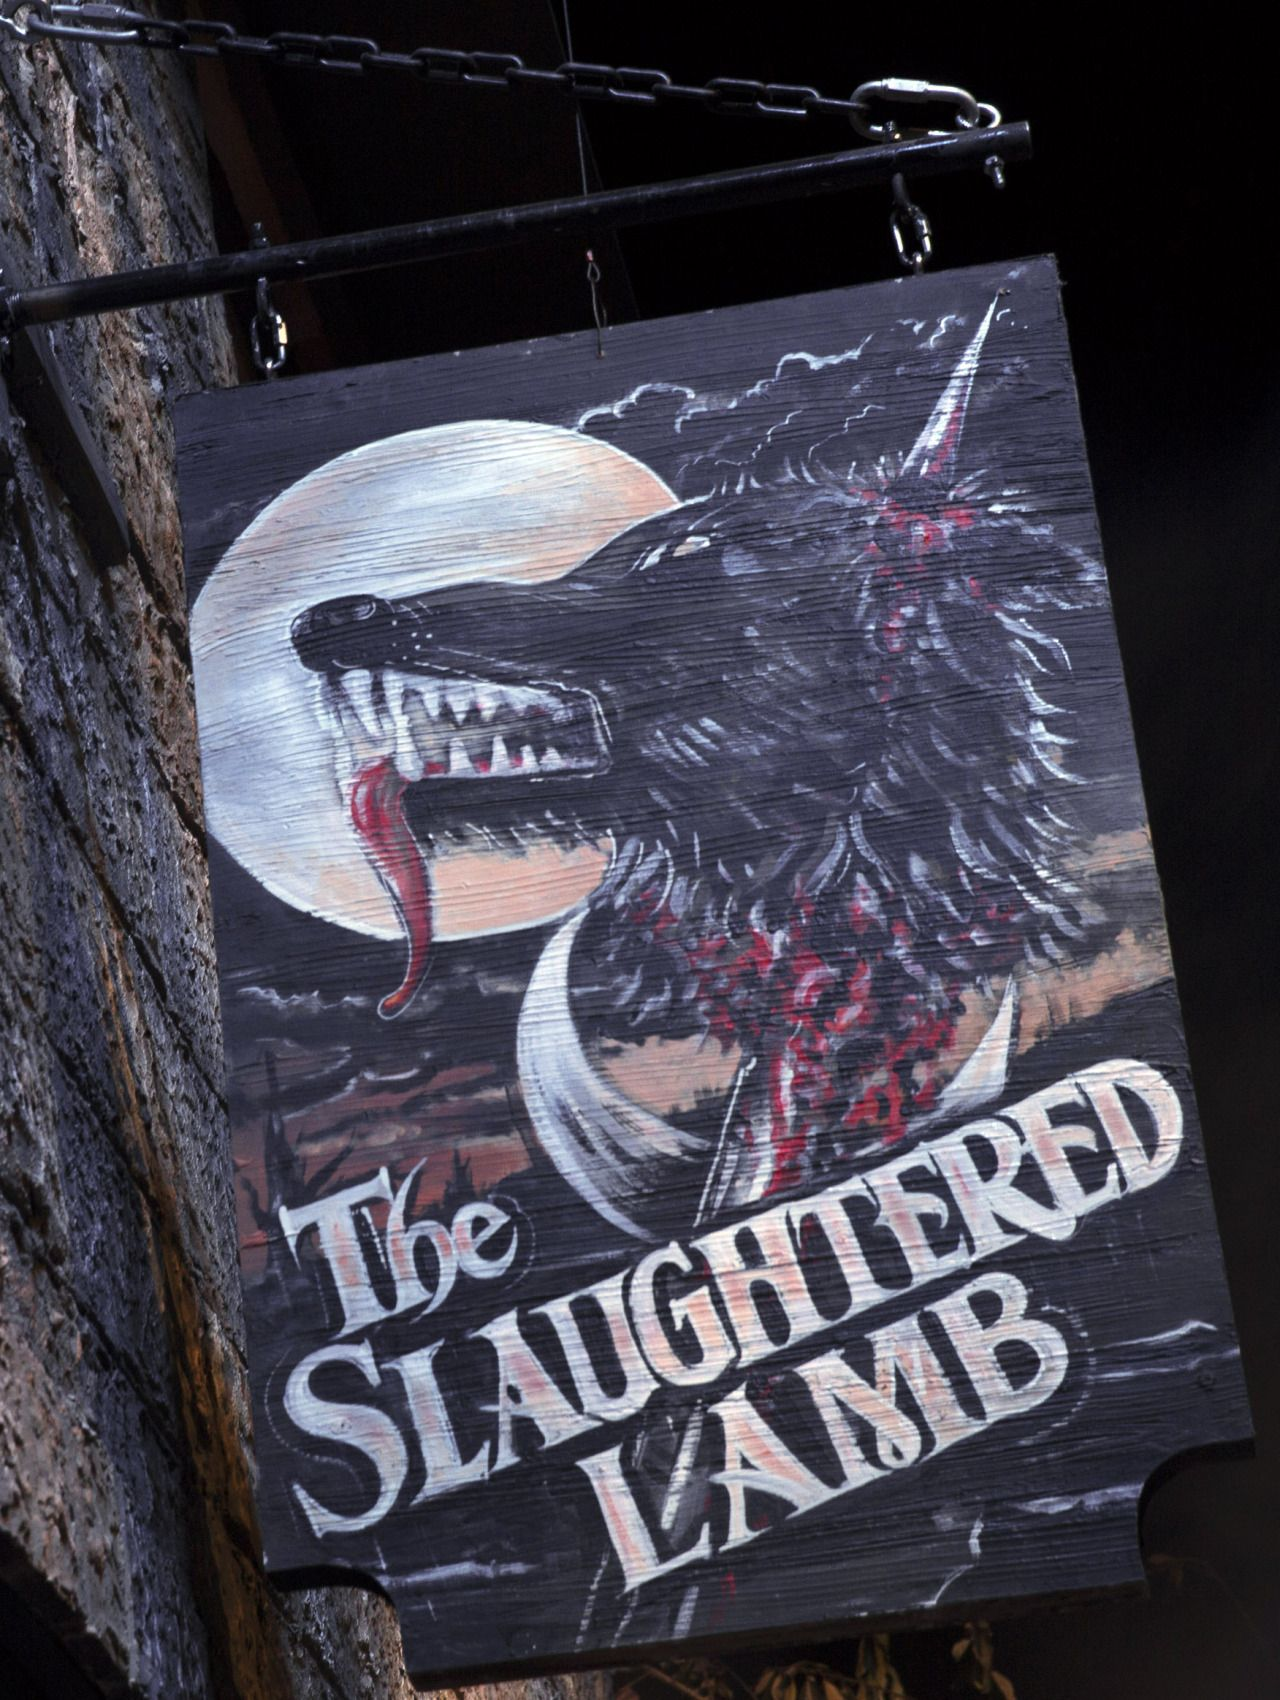 Vixens and Monsters  Movie posters minimalist Slaughtered lamb Vintage  horror